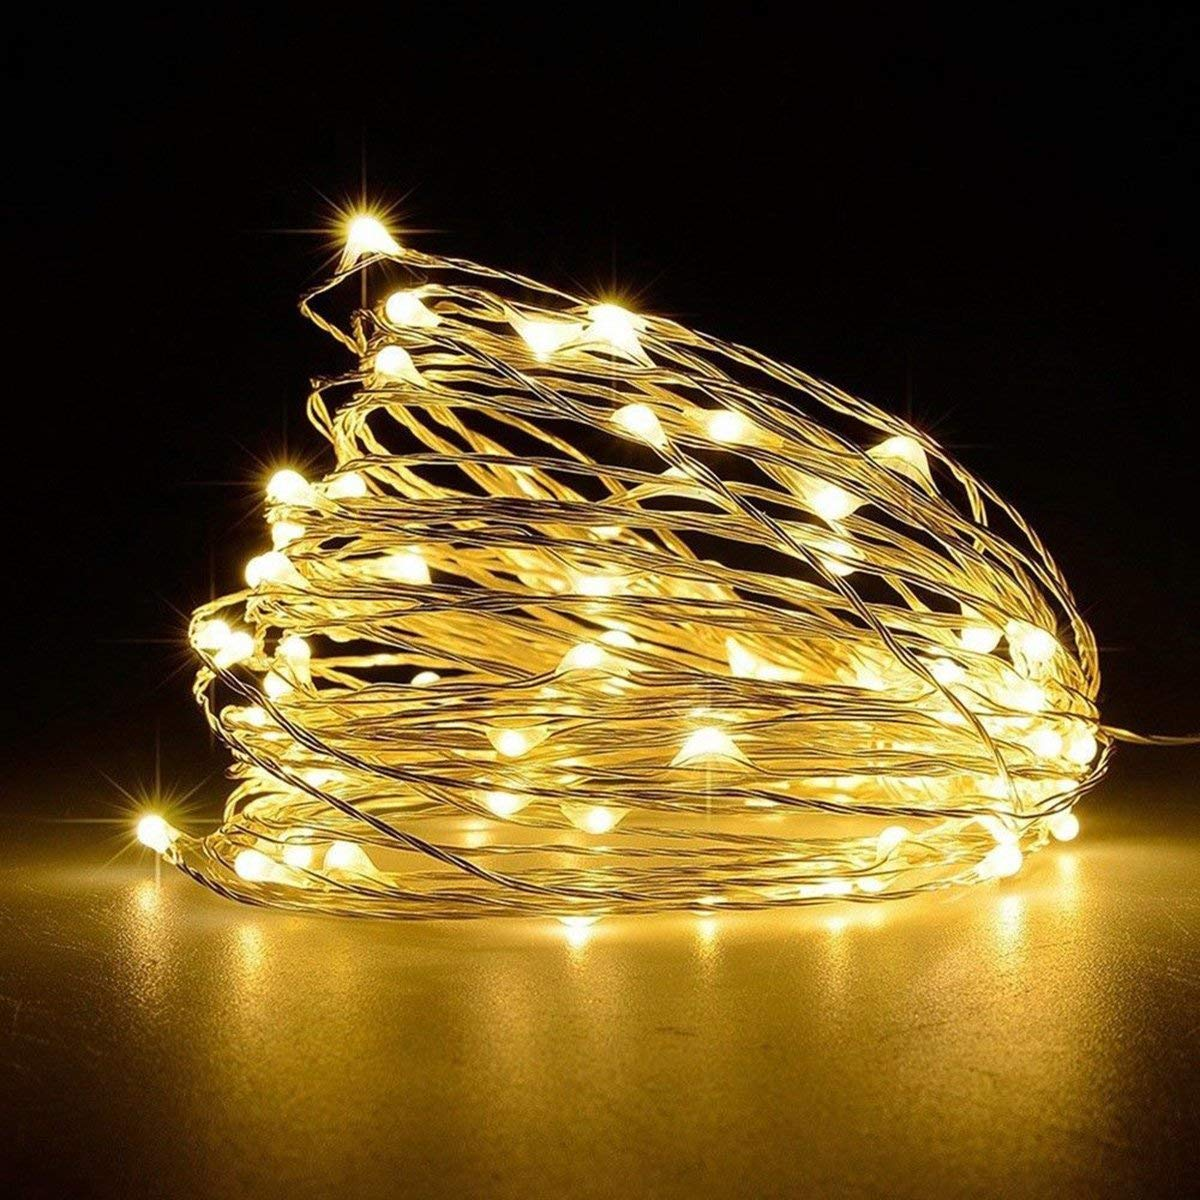 LED String Light,Leyeet 33ft with 100 LEDs USB Interface Waterproof Decorative Copper Wire Lights for Indoor, Bedroom Festival Christmas Starry Fairy Wedding Party Patio Window(Warm White)